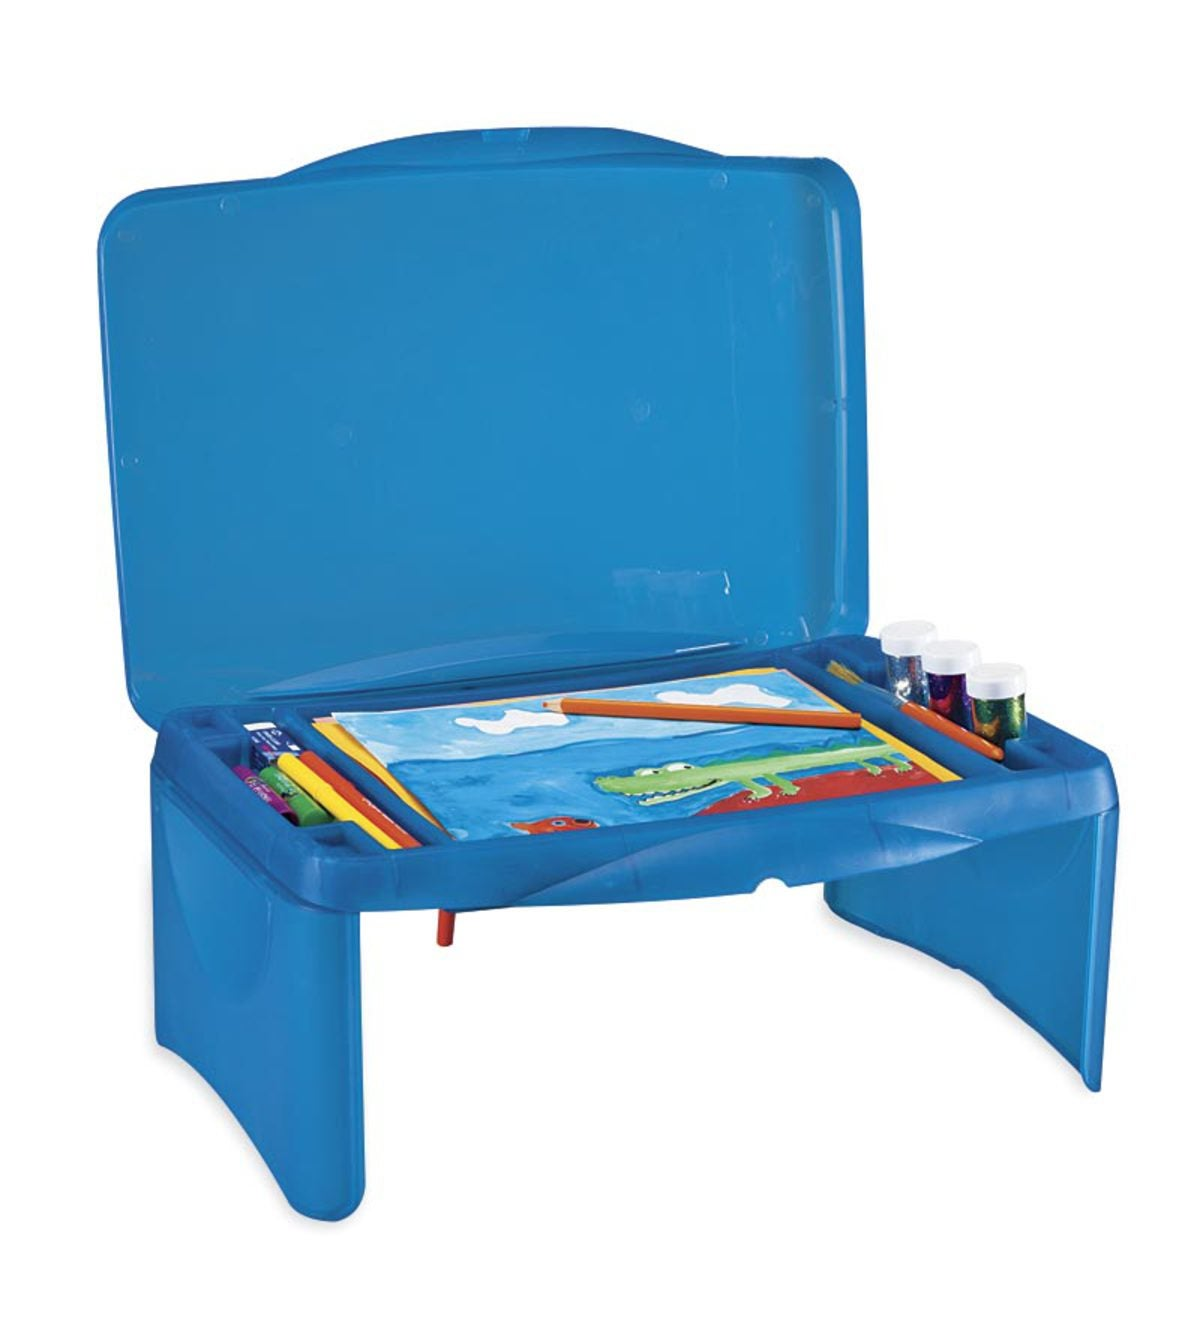 Folding Lap Desk - Blue